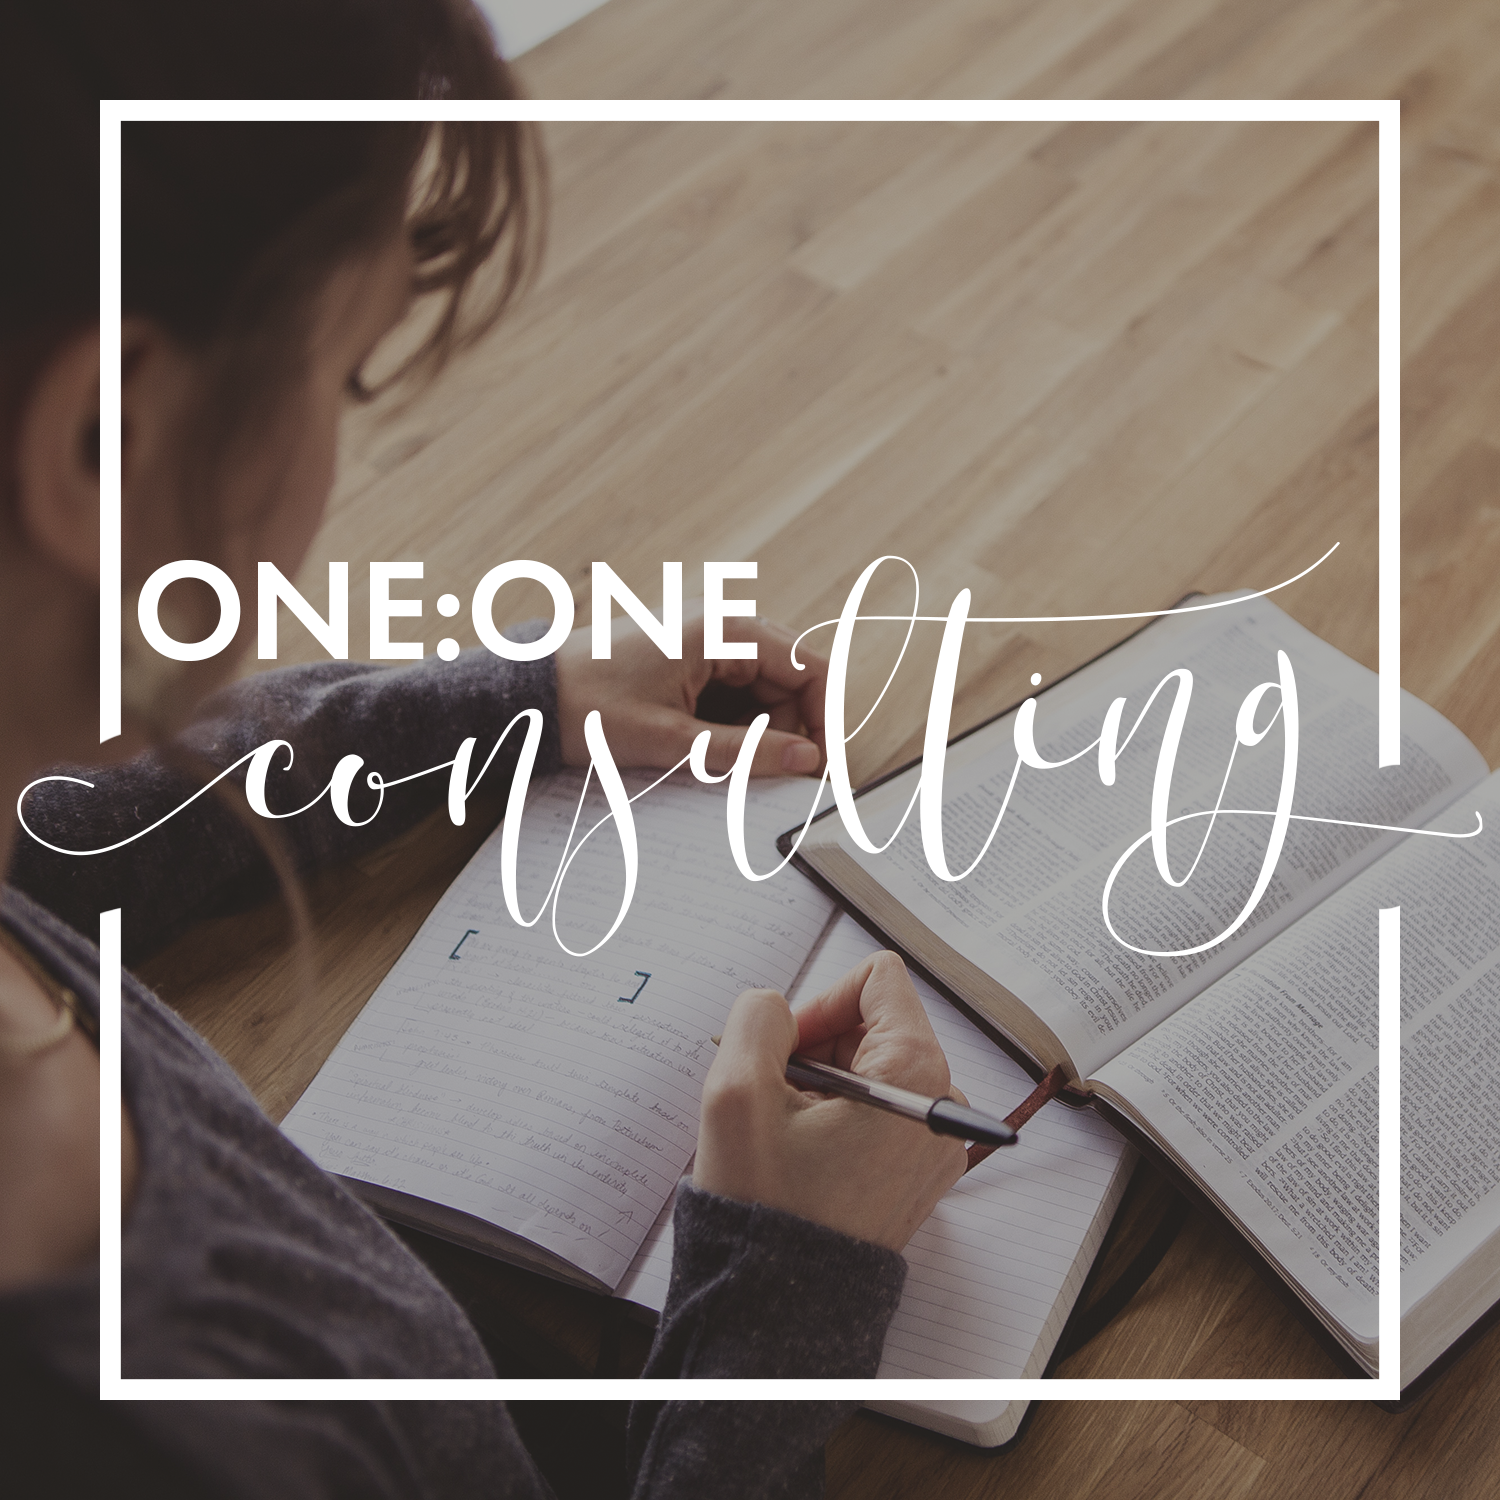 One on One consulting. Partner with Lindsey Hartz creative to create a customized launch plan for your next project.